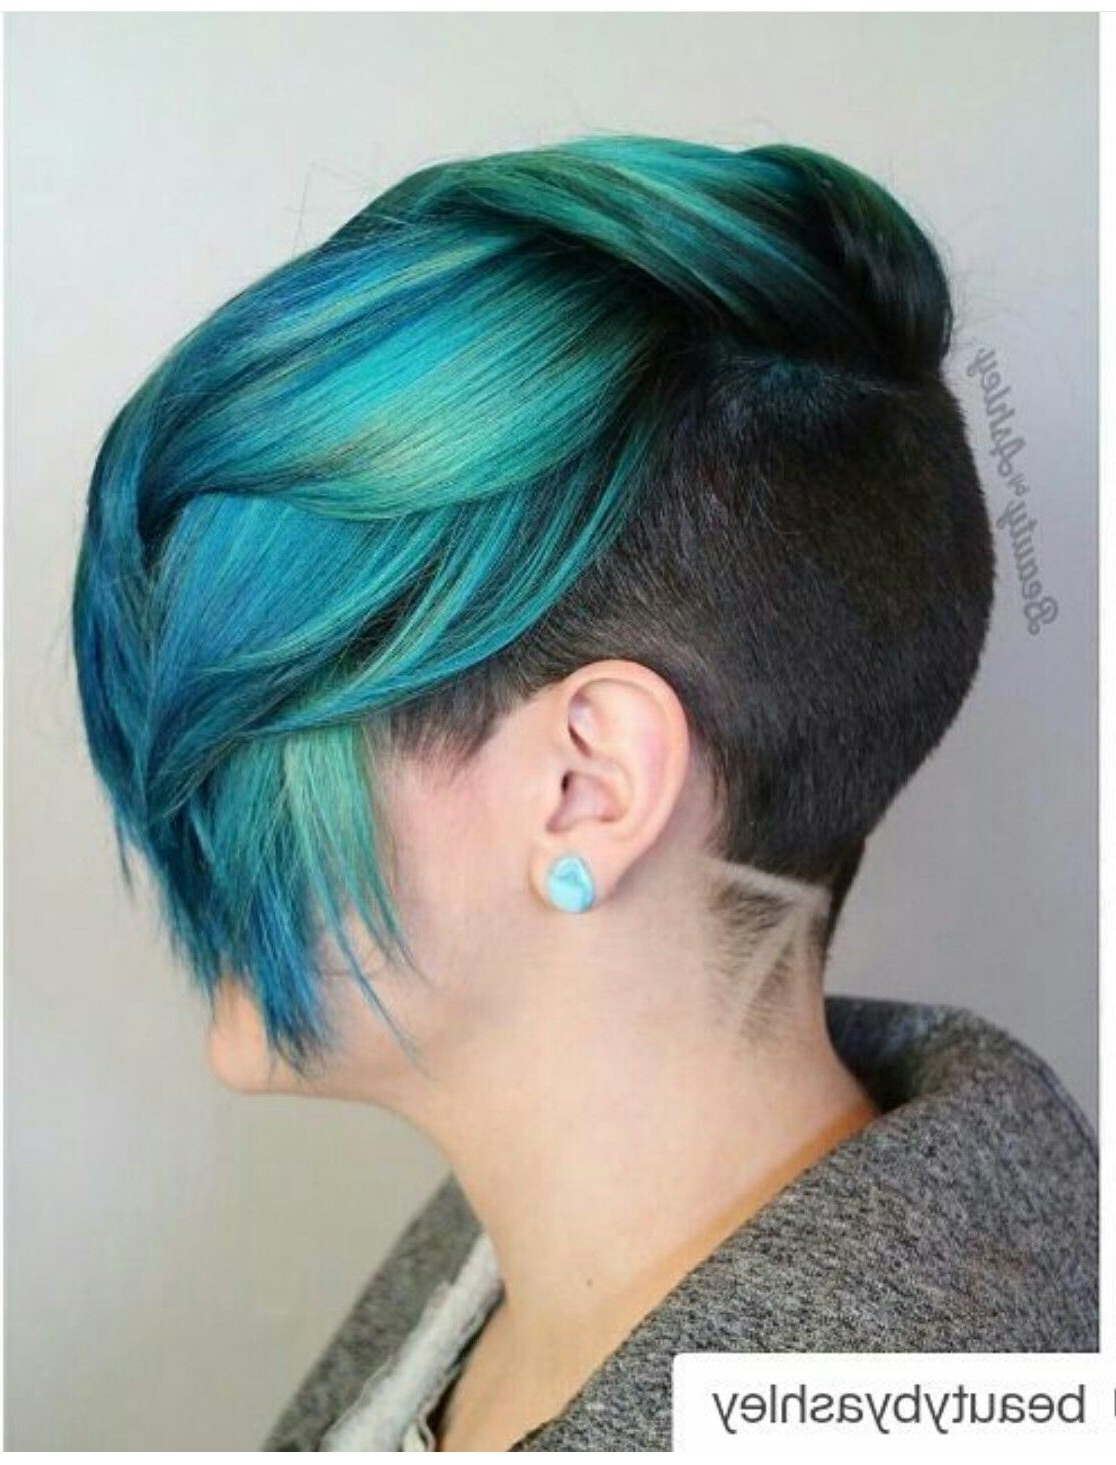 Well Liked Icy Purple Mohawk Hairstyles With Shaved Sides With Regard To Turquoise Teal Green Dyed Hair With Shaved Sides And Back (View 13 of 20)